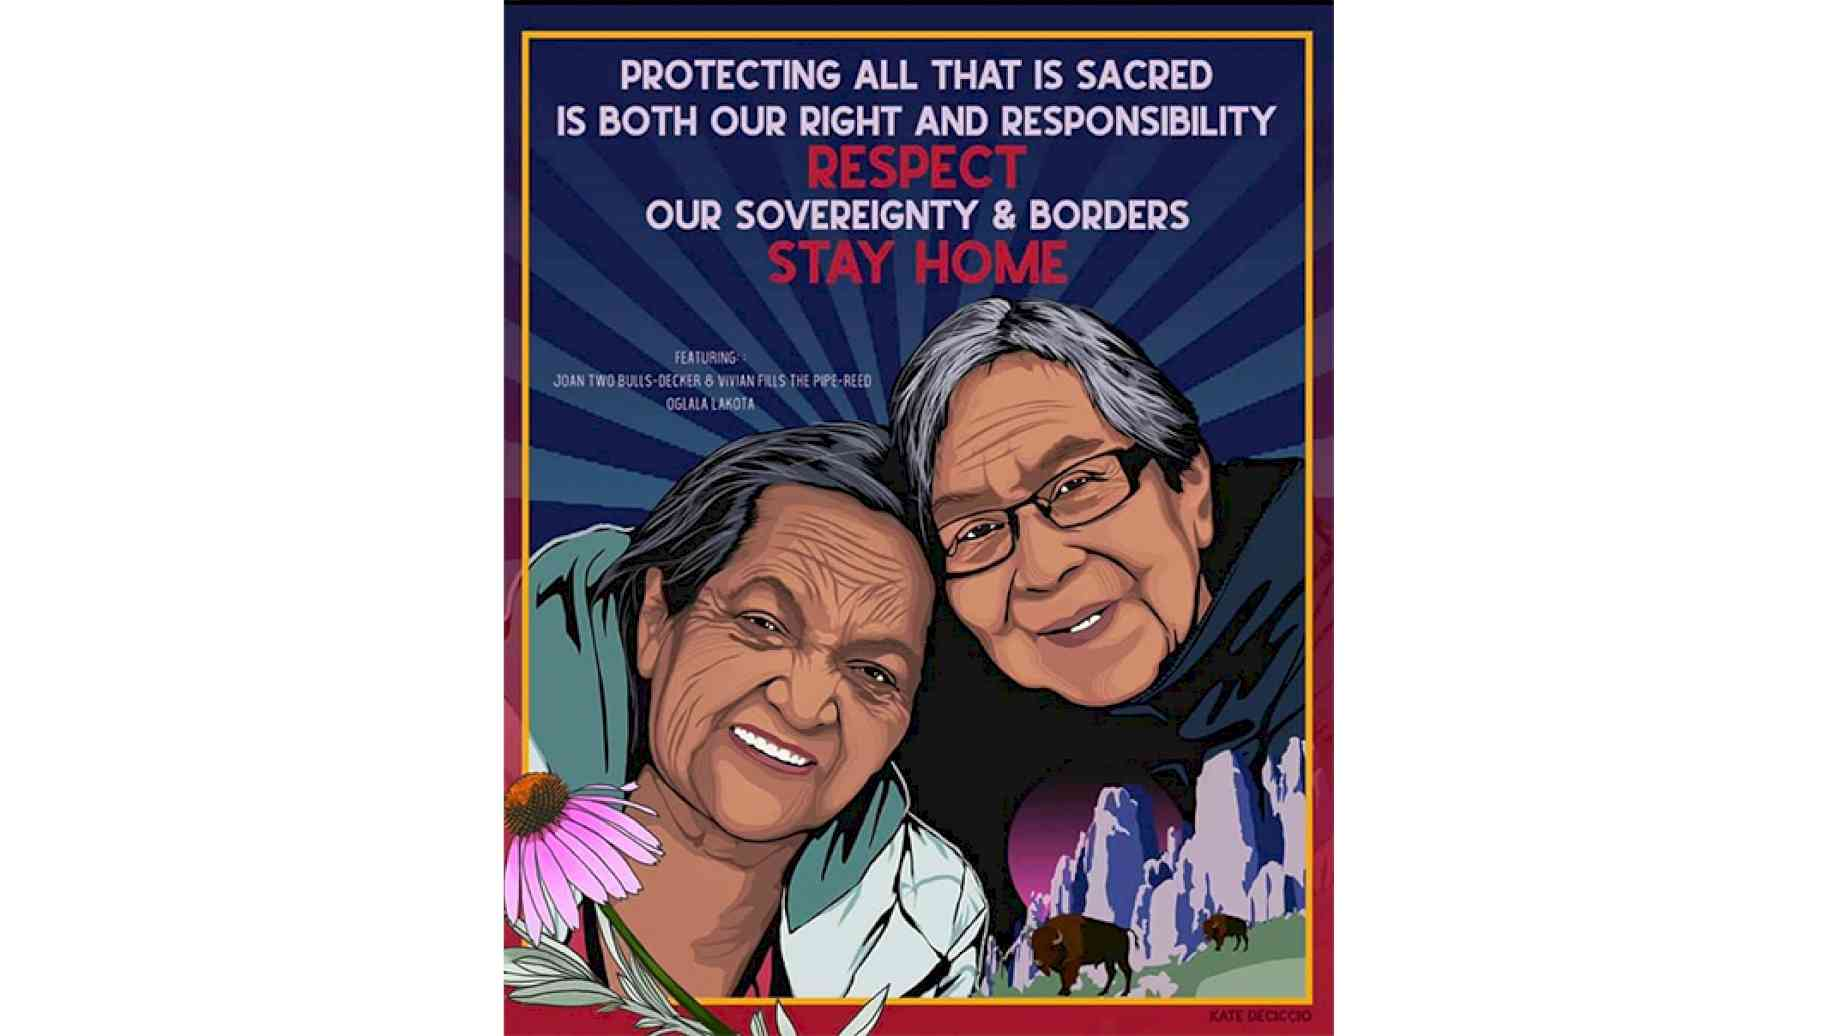 "A digital poster of two indigenous elders embracing over a mountainous landscape with Buffalo. Light and dark blue stripes radiate out behind them like the rays of the sun. The words ""Protecting all that is sacred is both our right a responsibility, RESPECT our sovereignty and borders, STAY HOME"" hover at the top of the image."